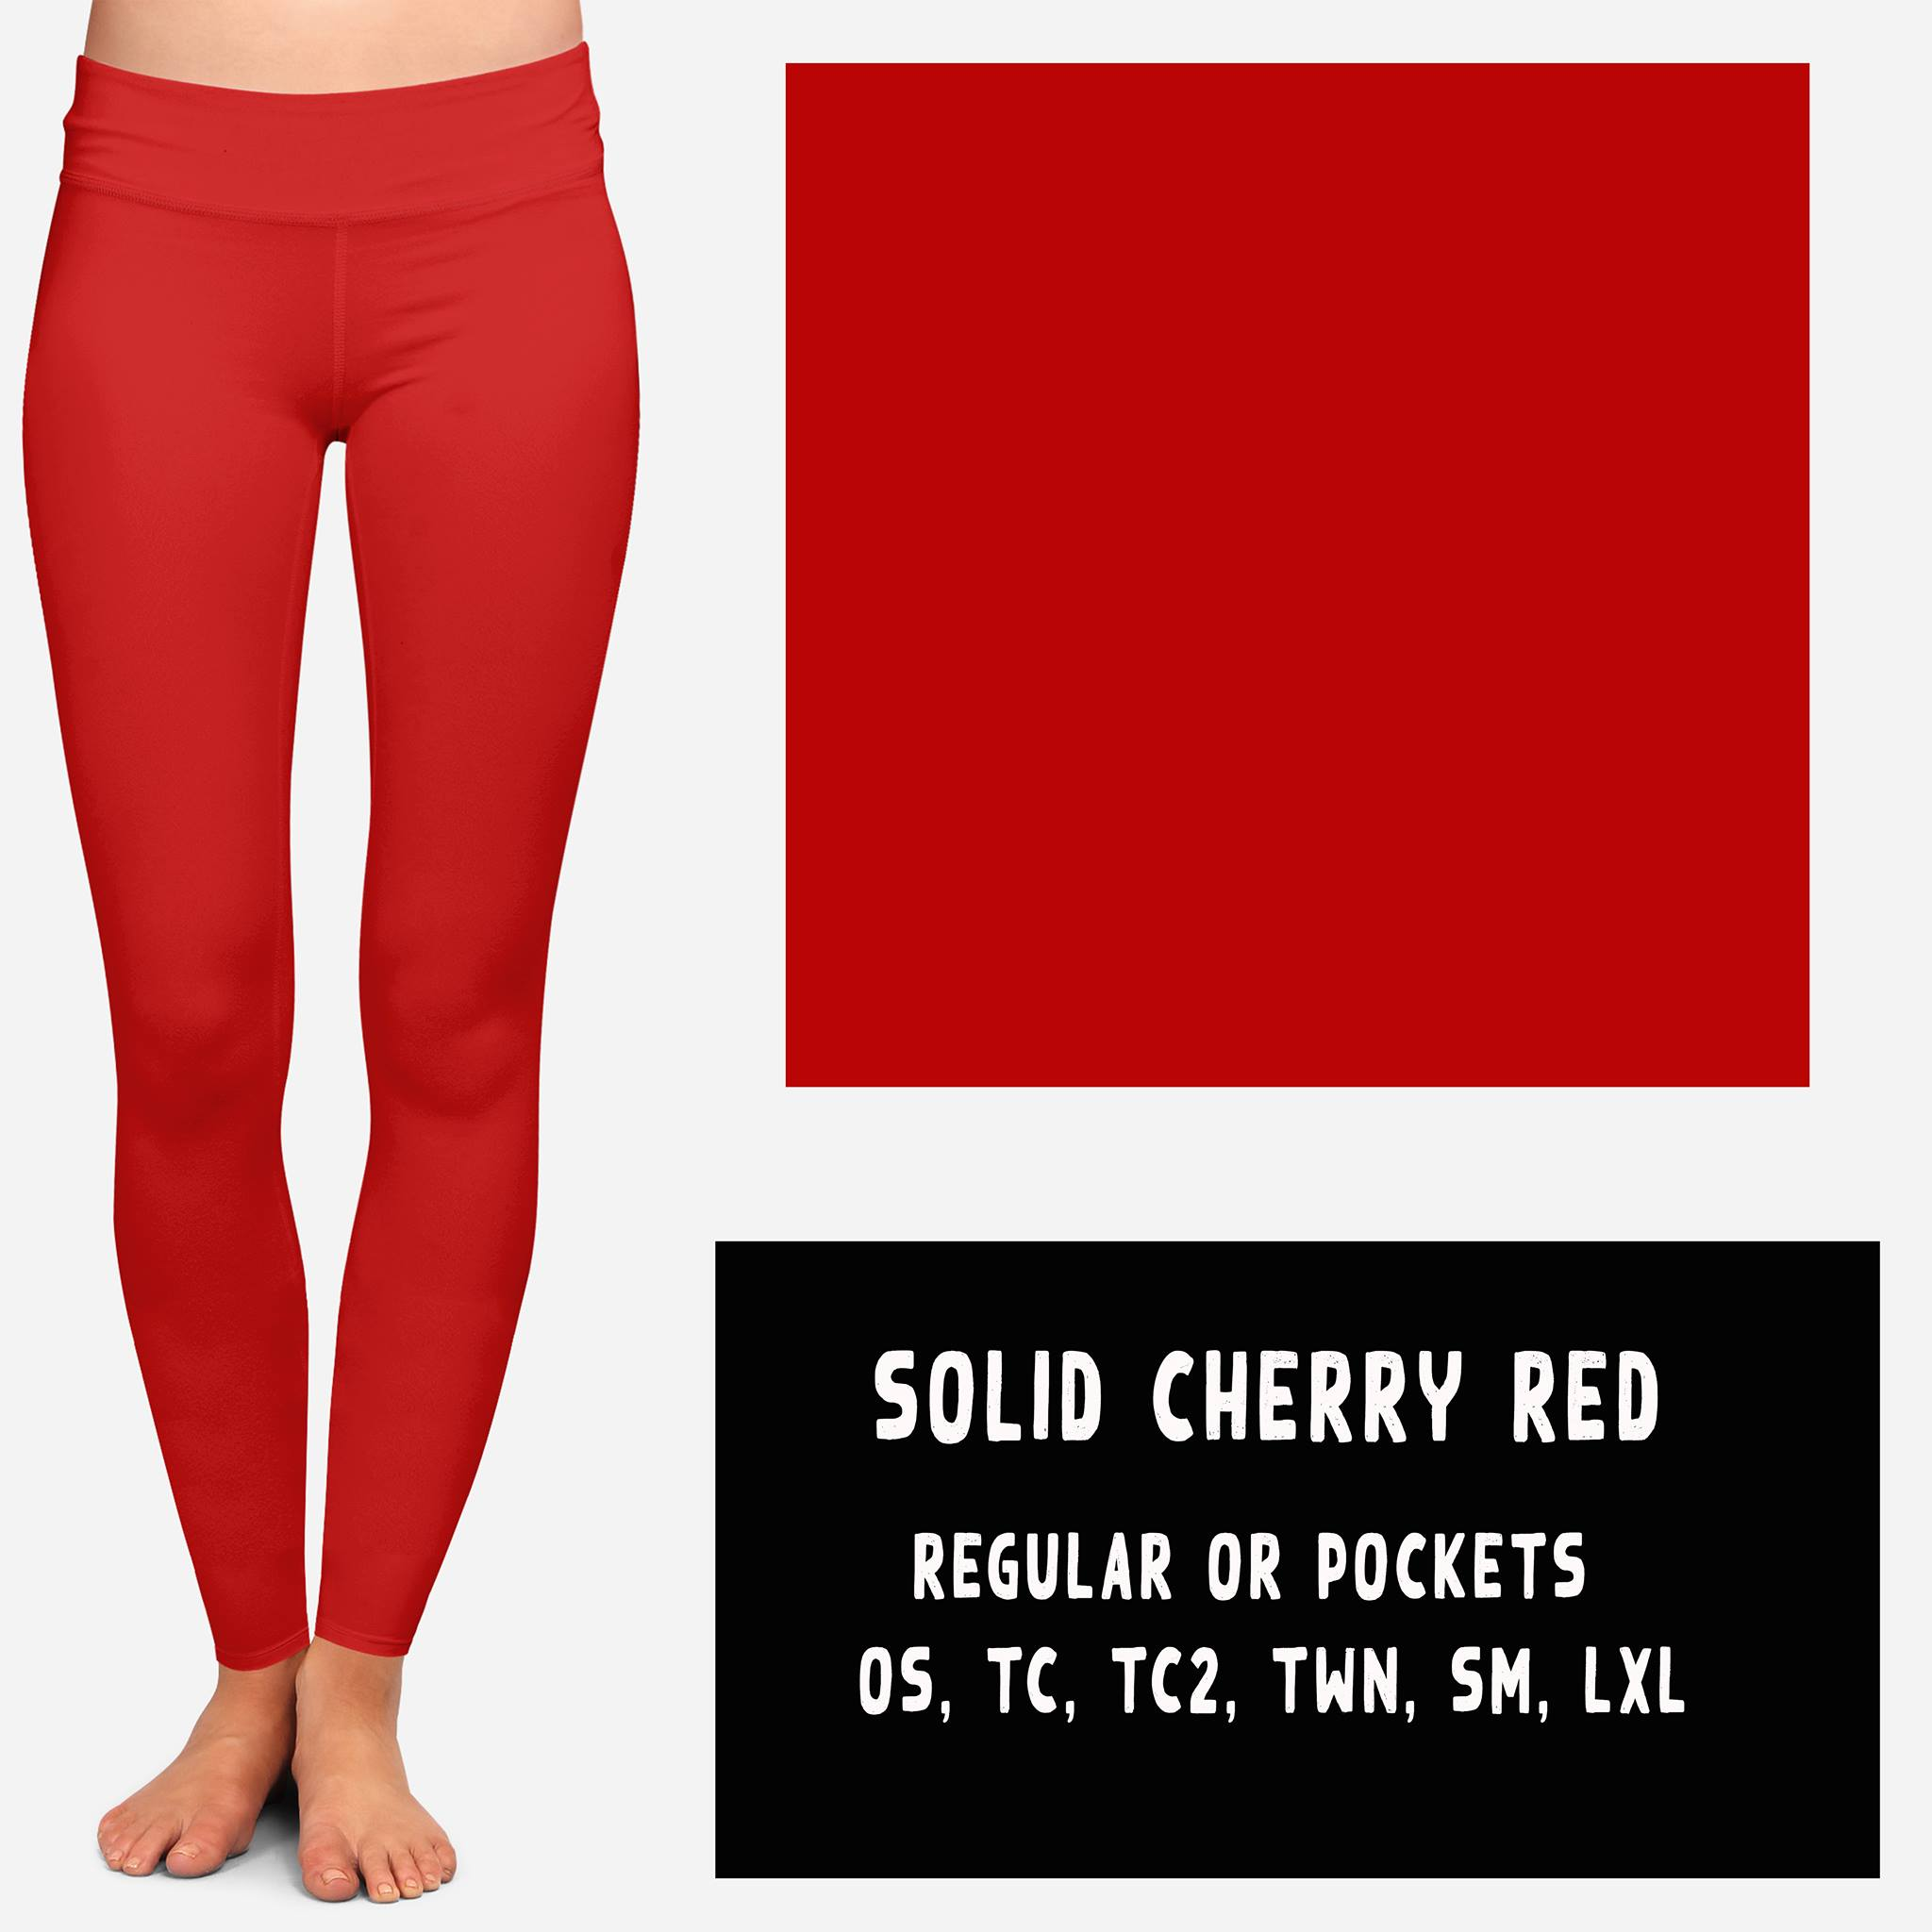 SOLID CHERRY RED LEGGING